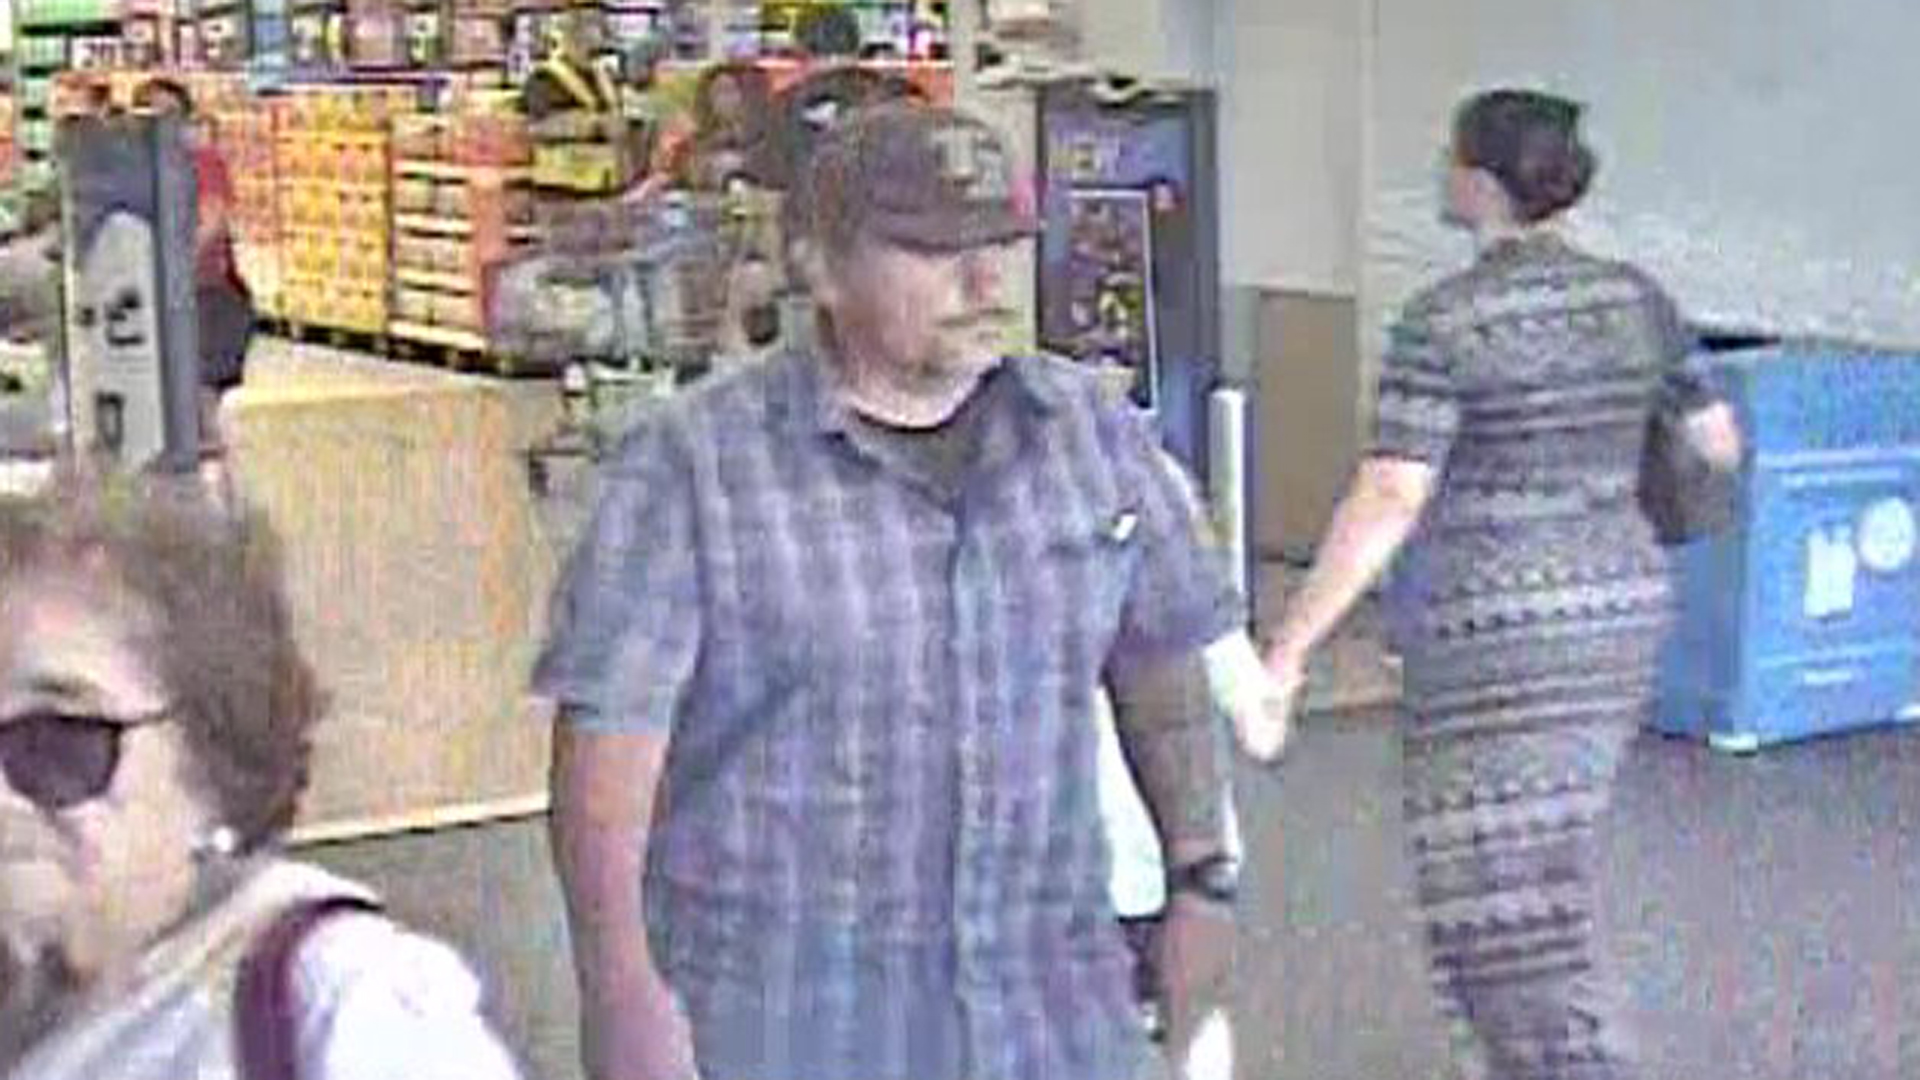 El Paso police released this photo of the man, who is believed to have been a hero during the shooting at Walmart earlier this month.